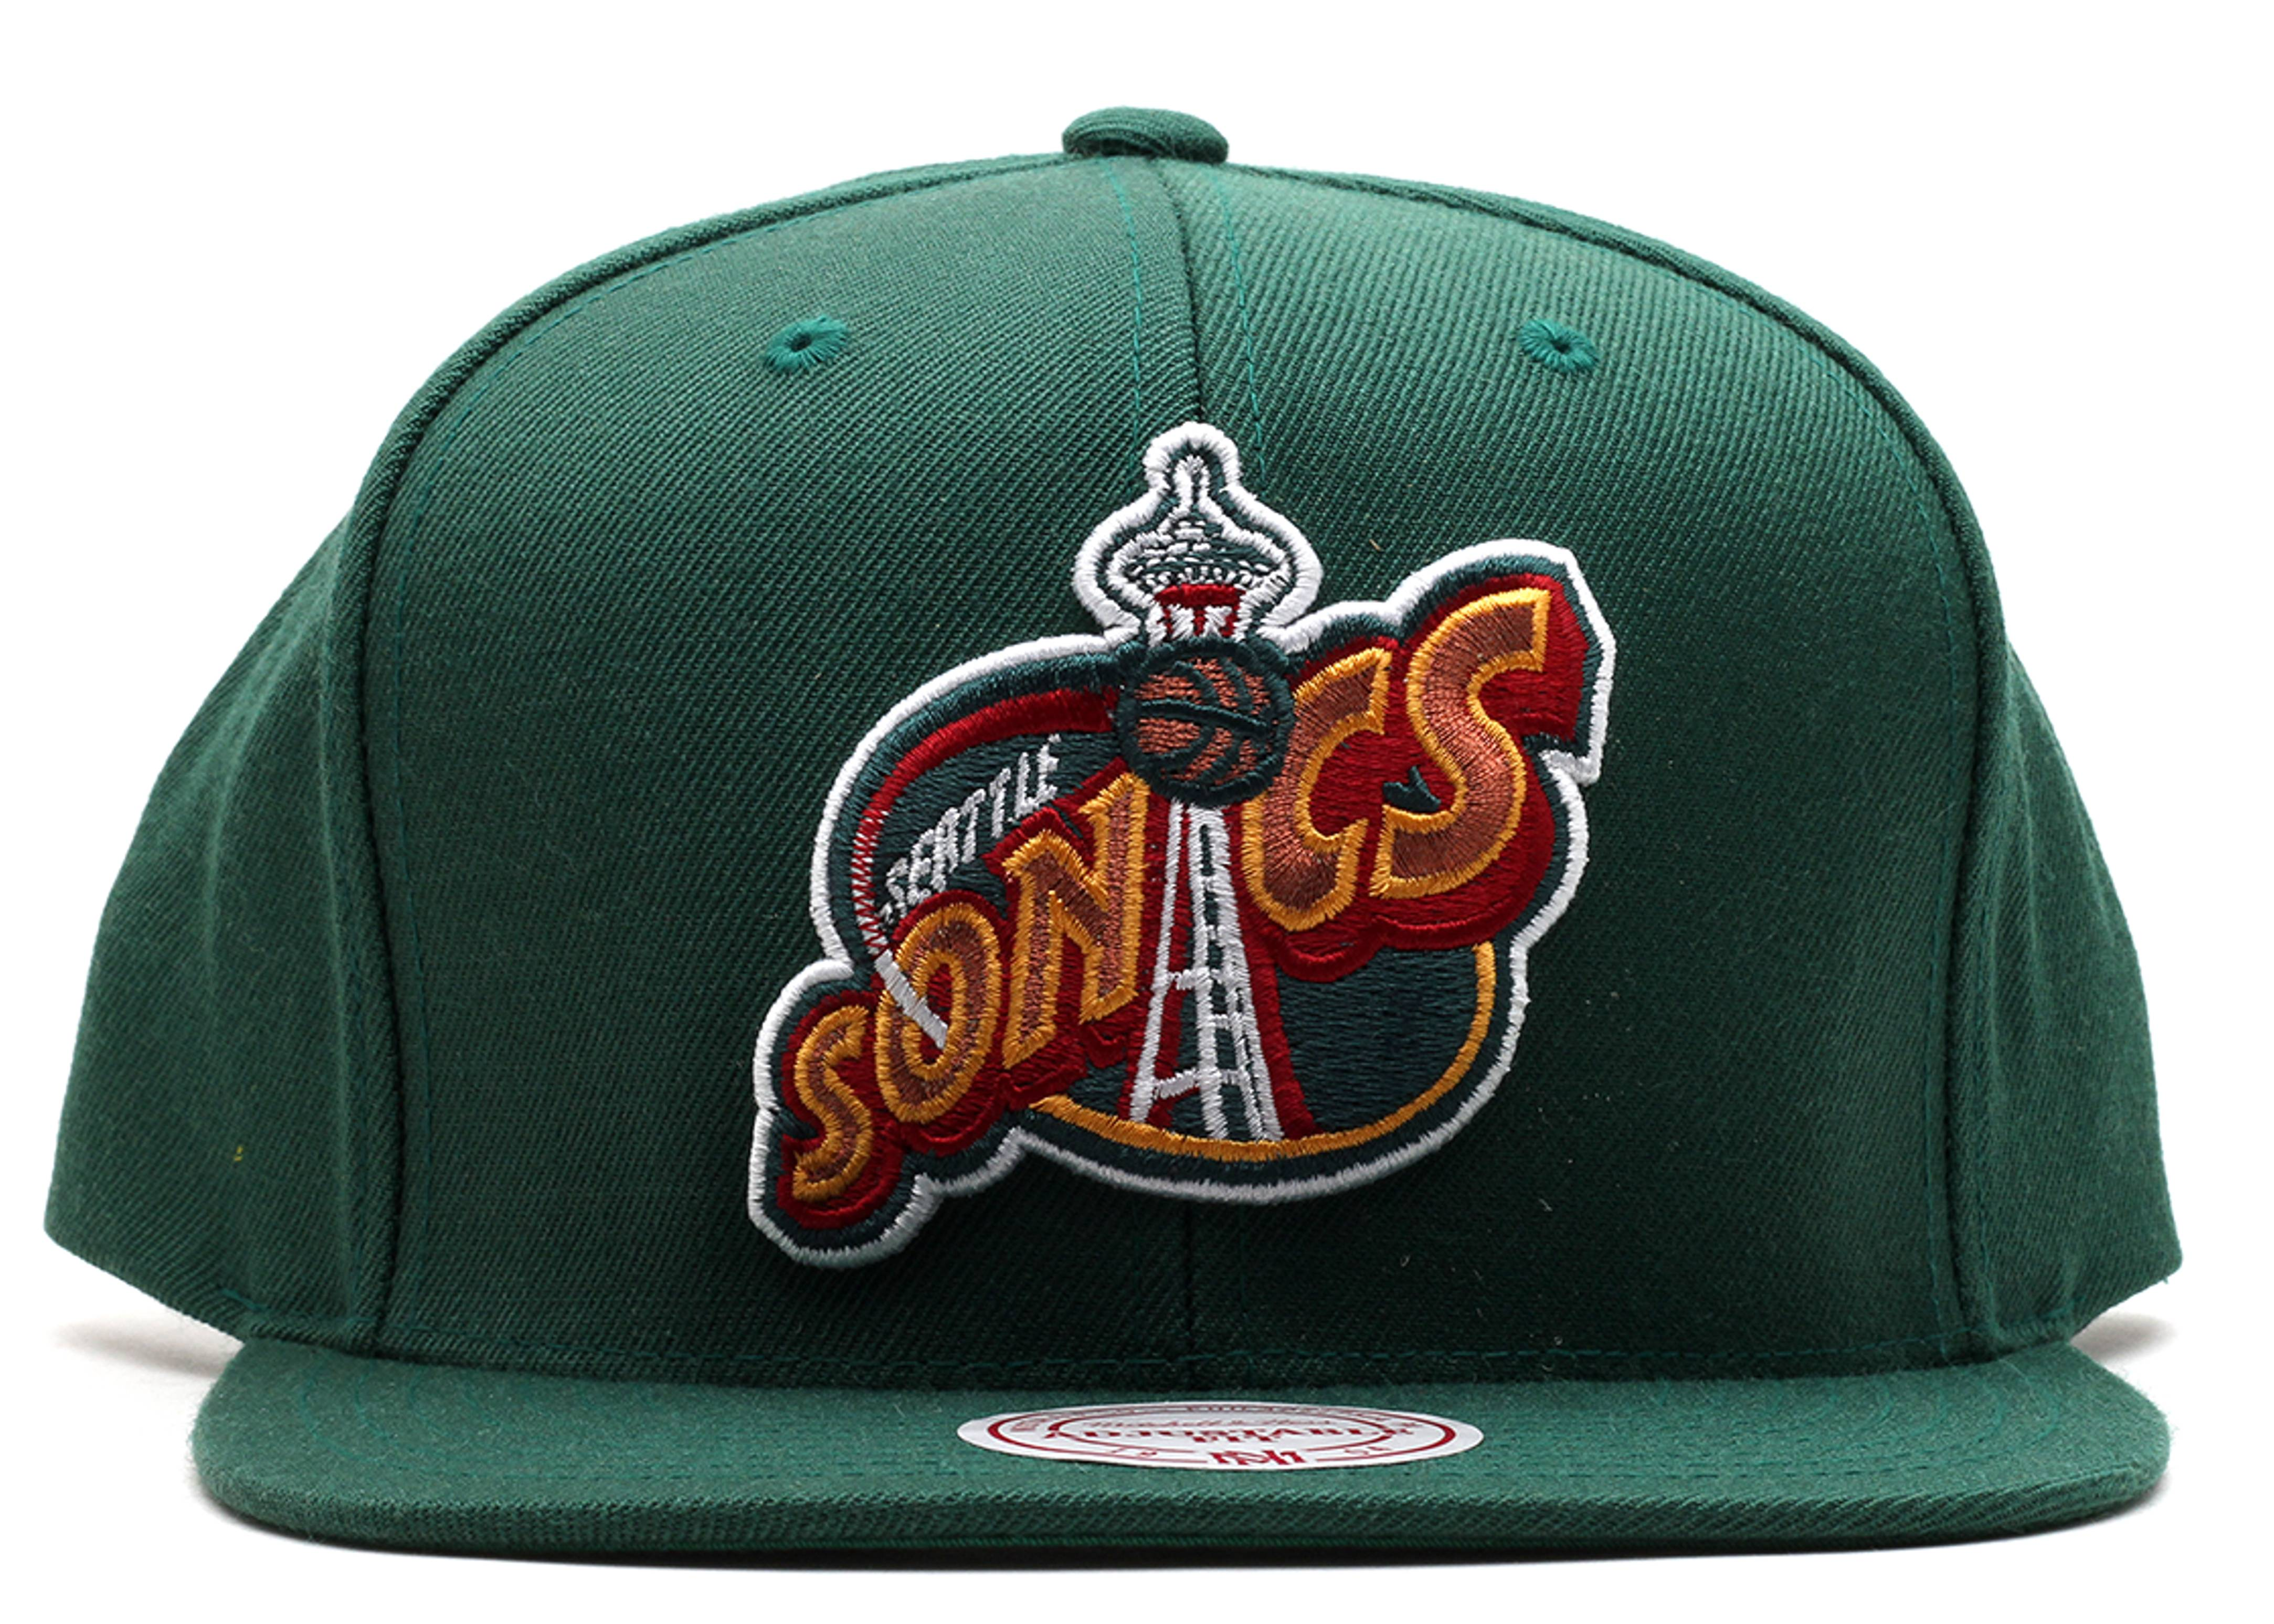 seattle supersonics snap-back